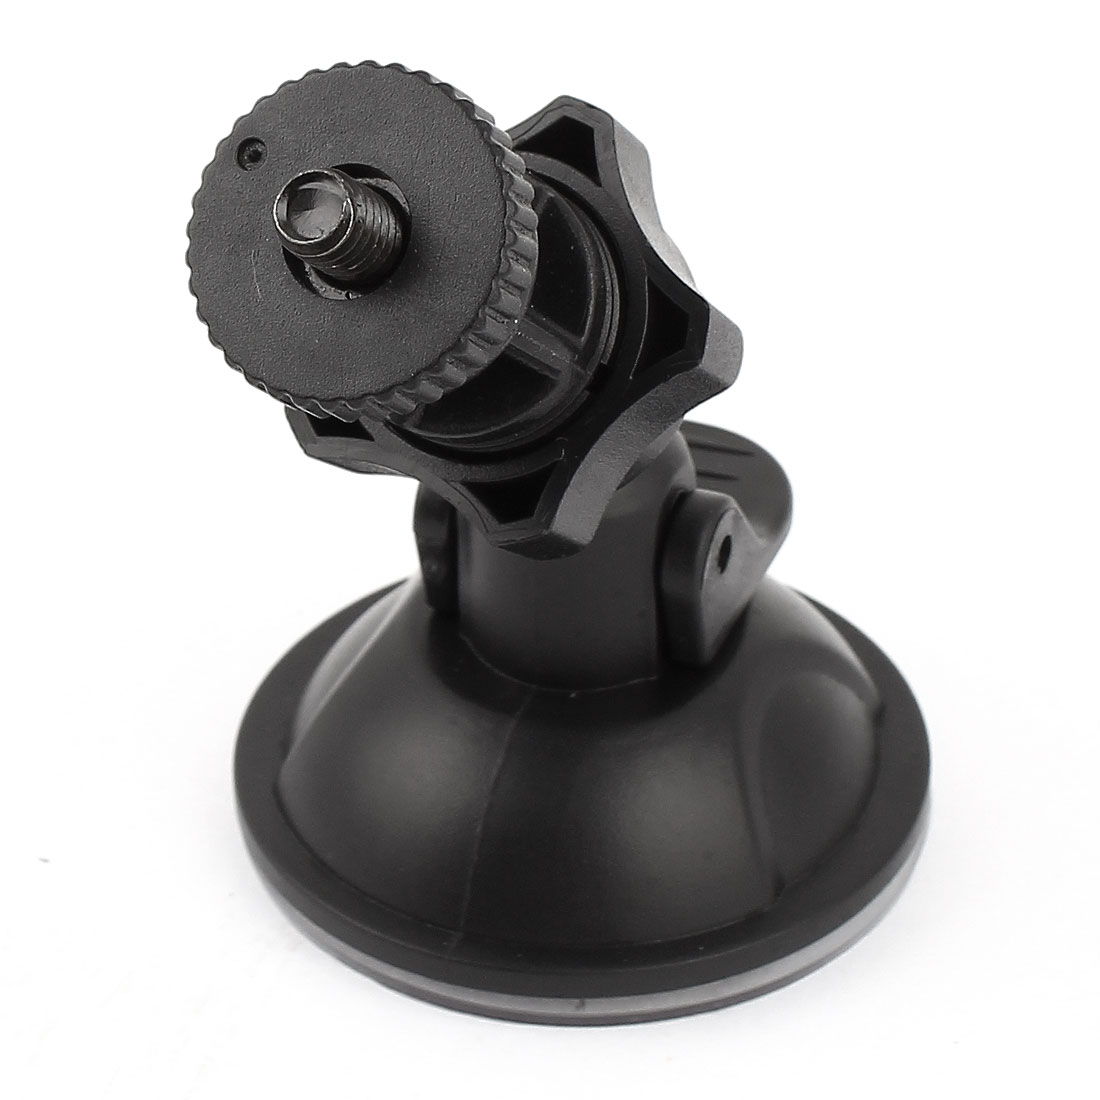 Adjustable Windshield Suction Cup Mount Holder Stand for Car GPS DVR Digital Camera